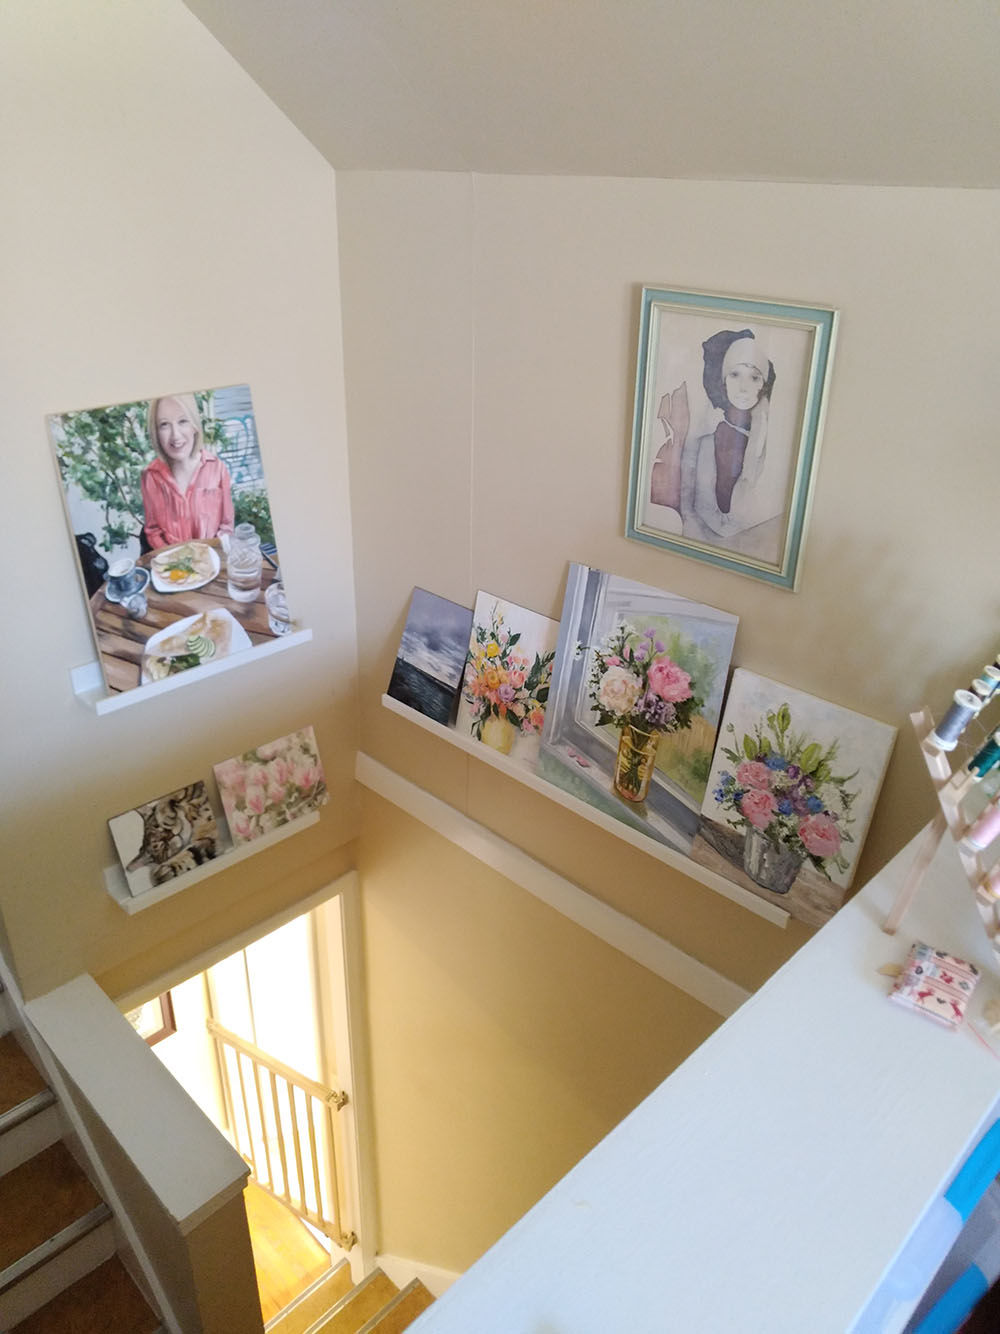 I installed shelves in the stairwell to hold my oil paintings in progress as they take ages to dry.